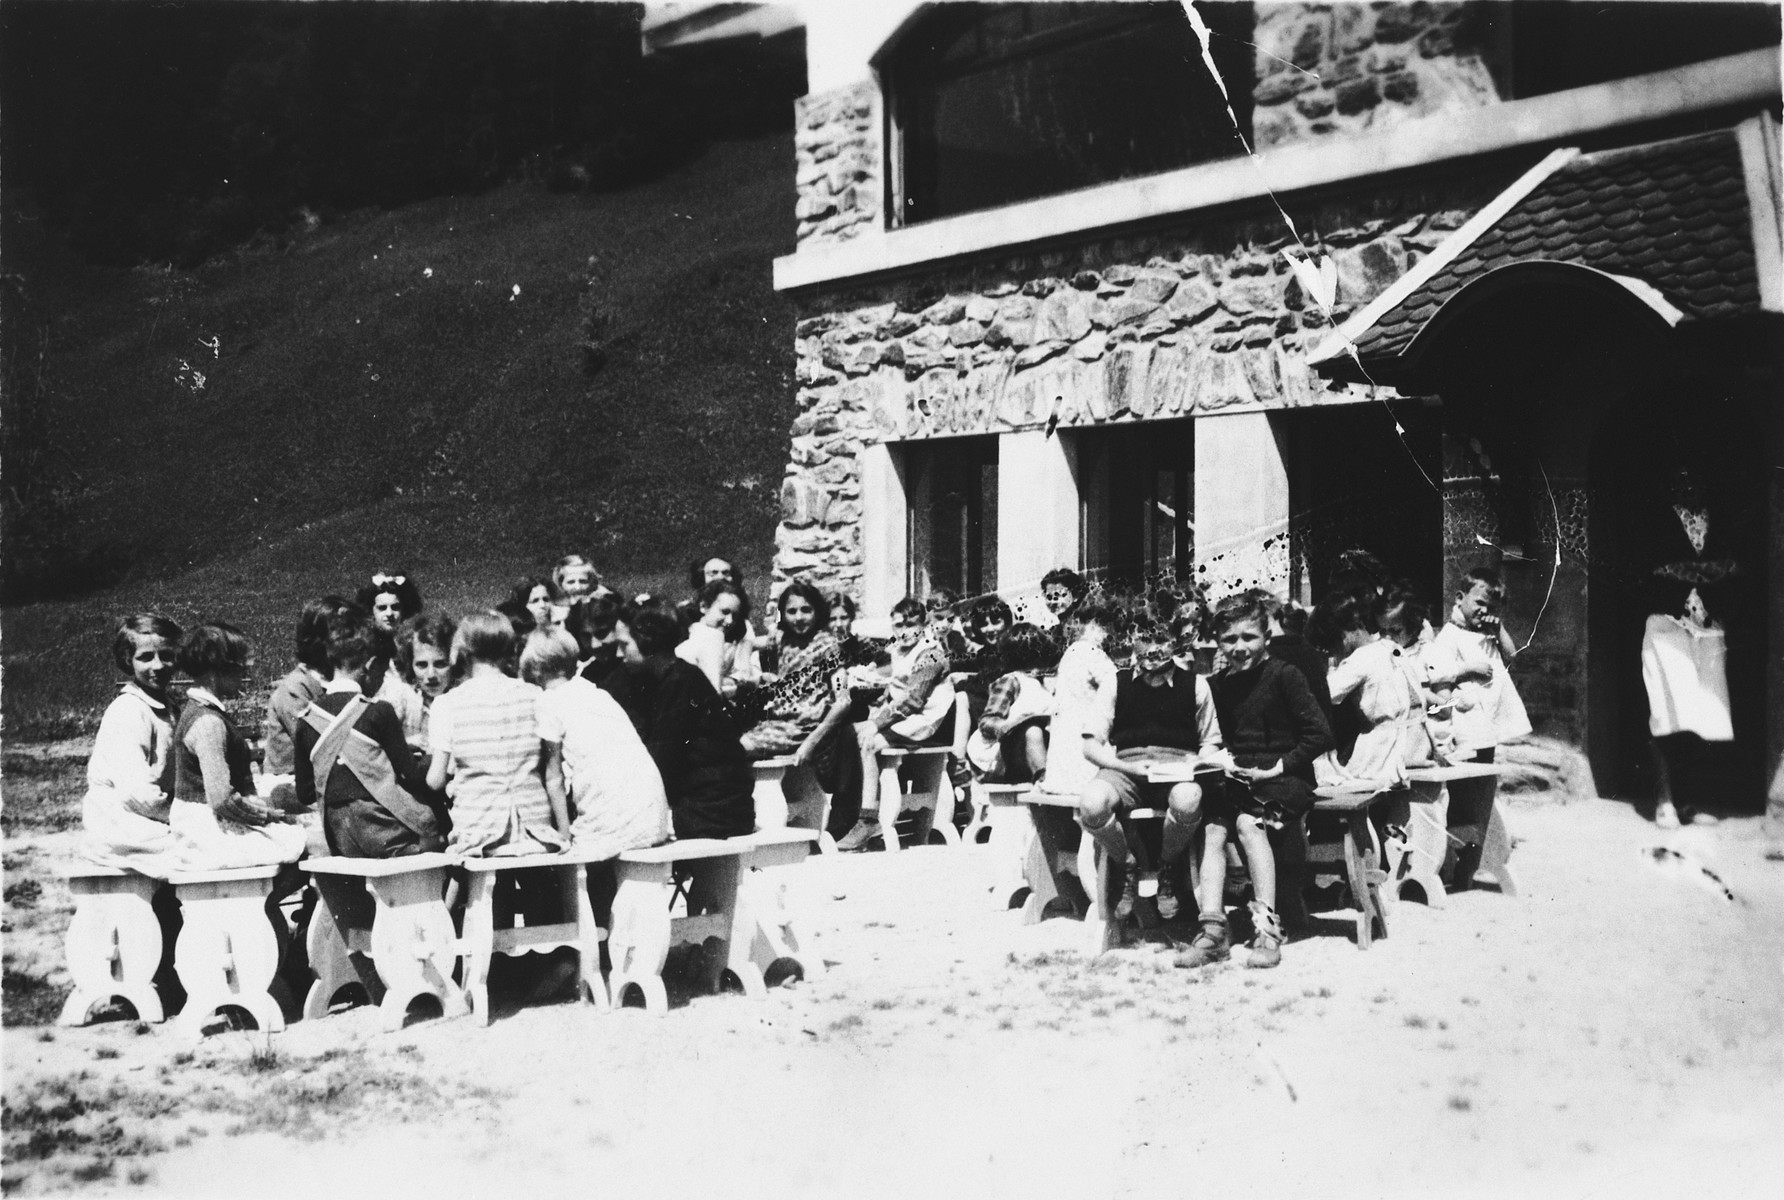 Children sit on outdoor benches in a Secours Suisse home in Praz sur Arly.